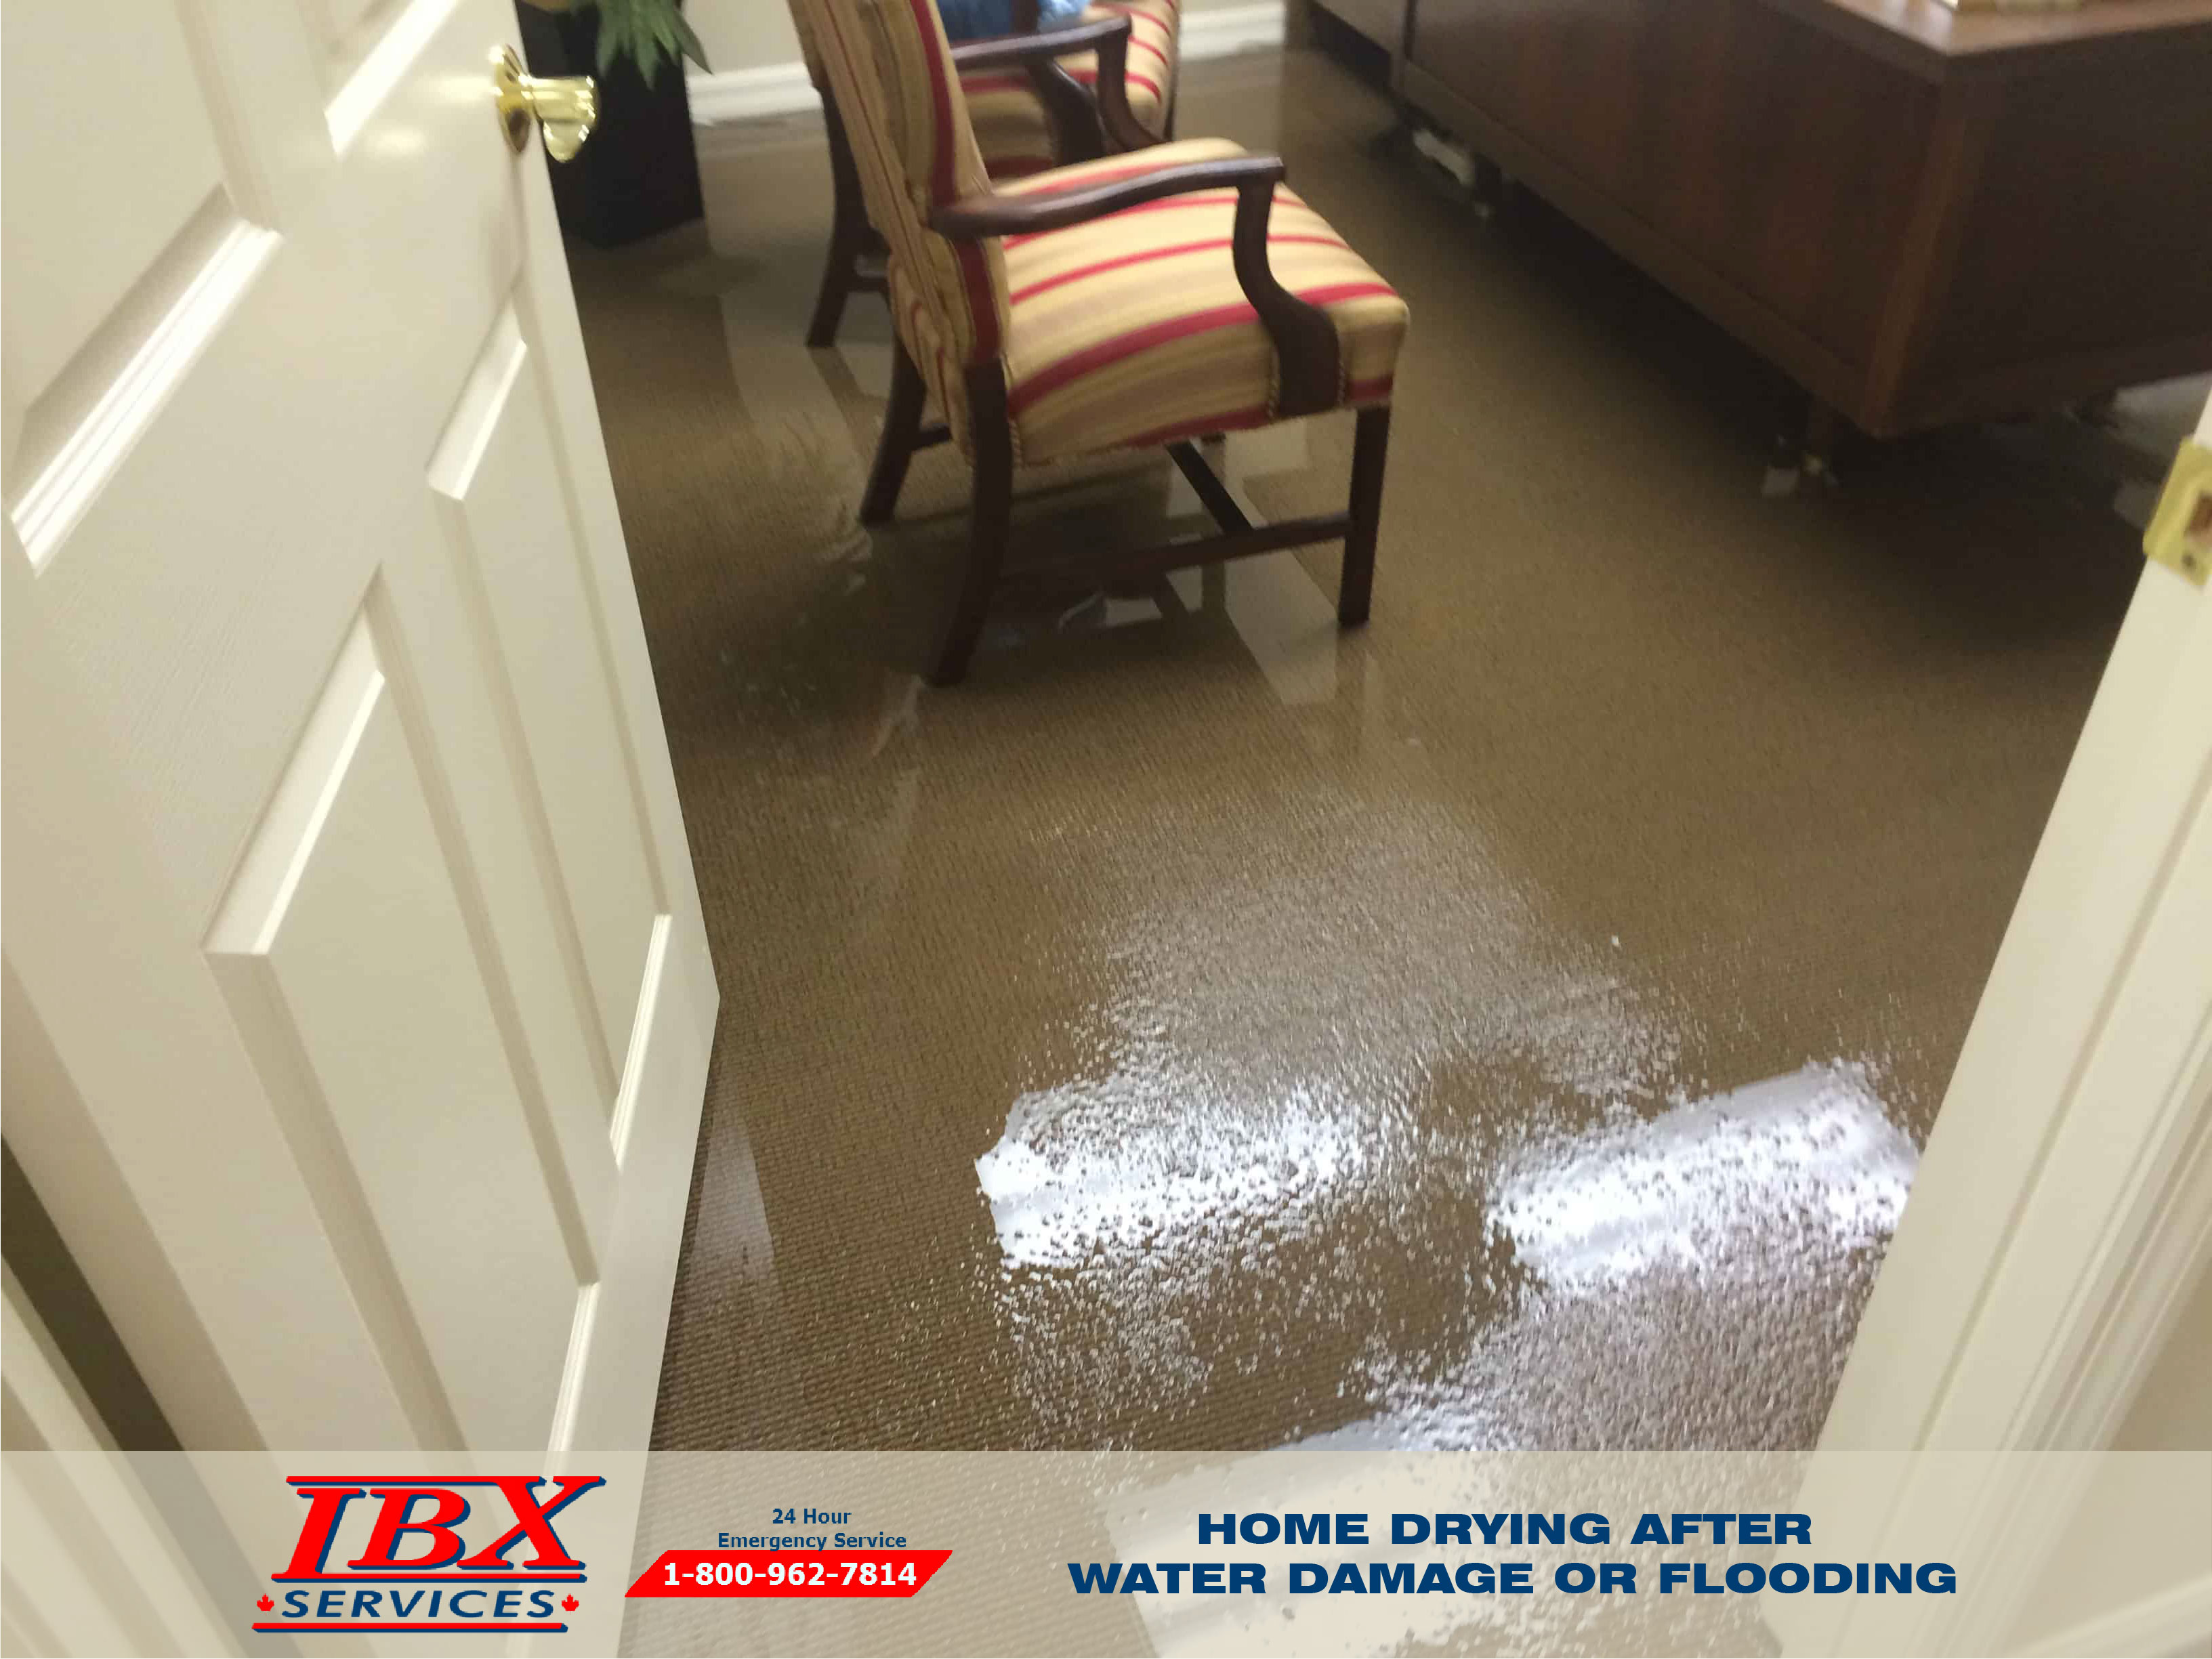 Home Drying After Water Damage Or Flooding